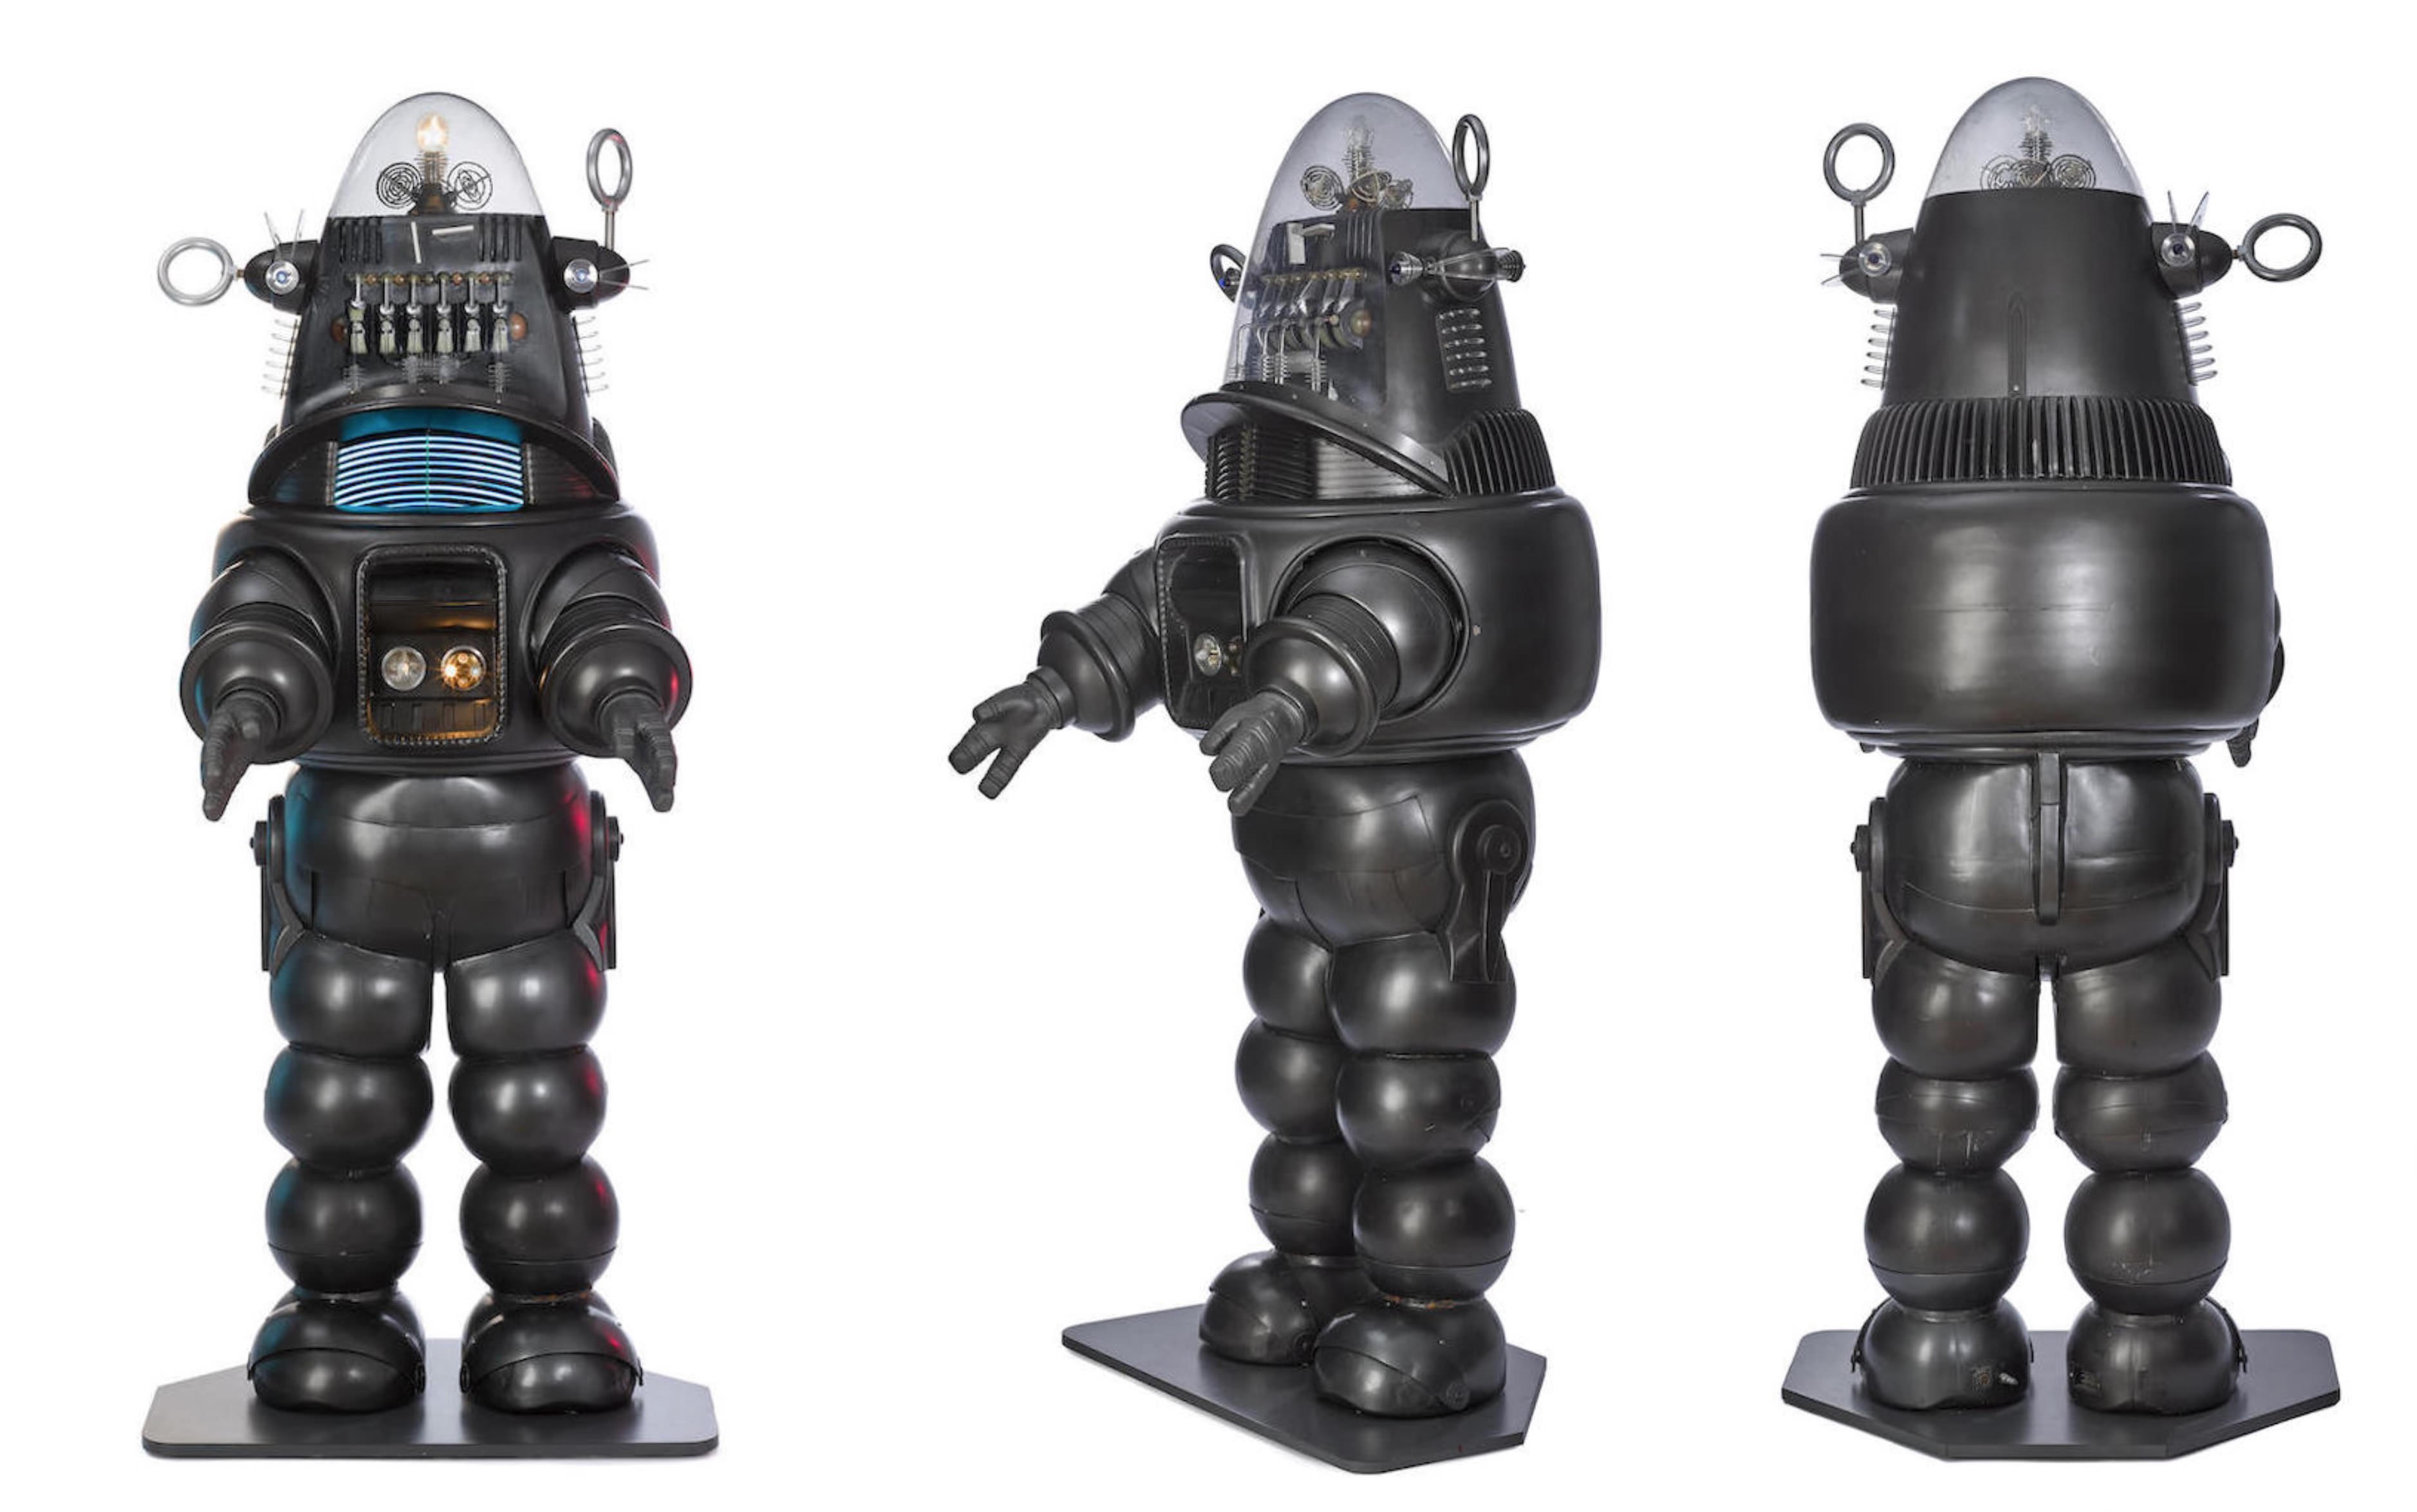 The Jeep + Robby the Robot from Forbidden Planet - 1956